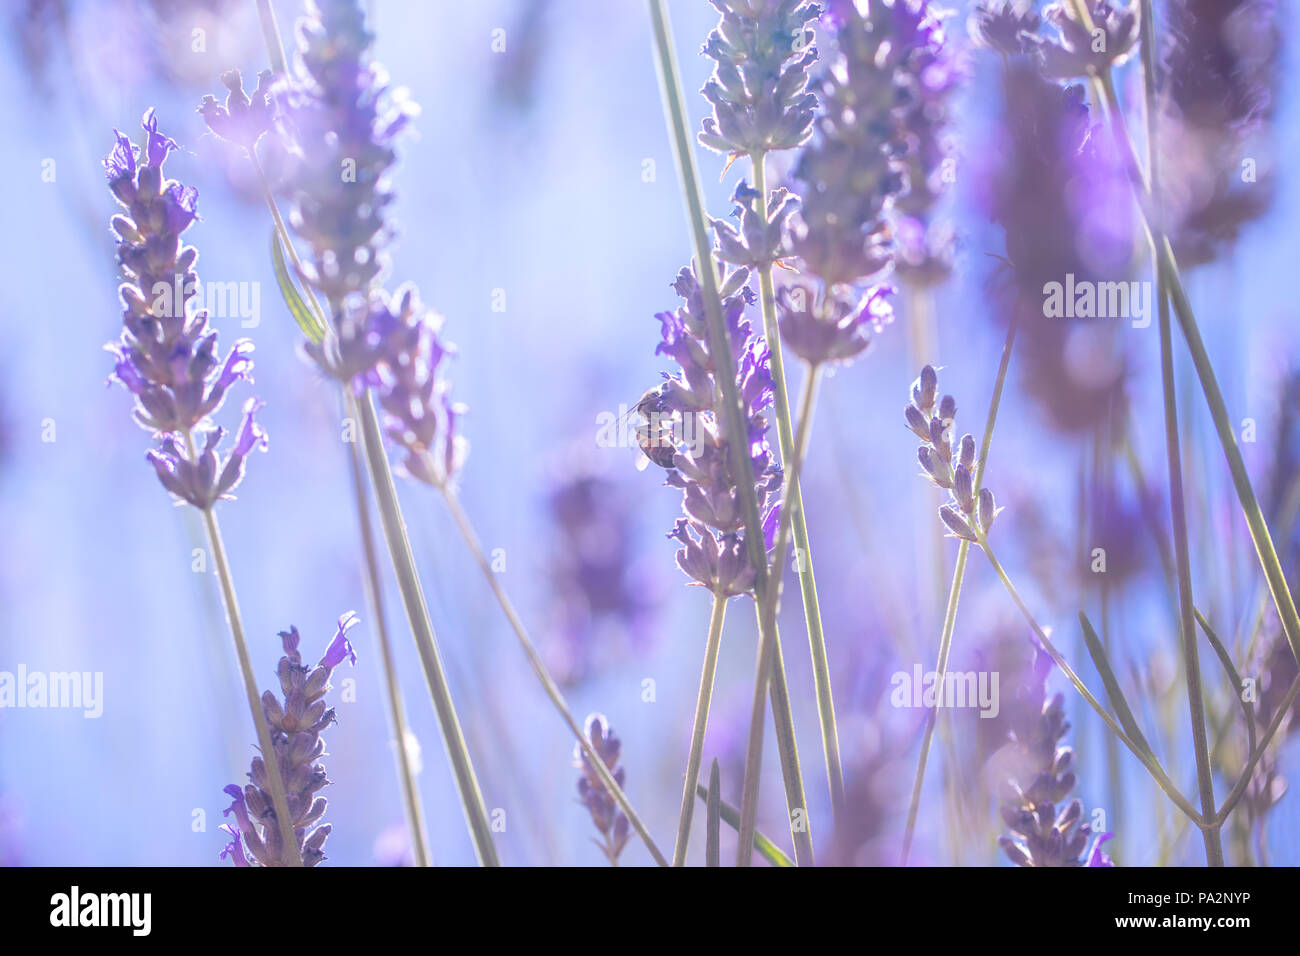 Gentle lavender flowers, little tender purple wildflowers on the field, abstract floral wallpaper, fresh and beauty of summer nature - Stock Image